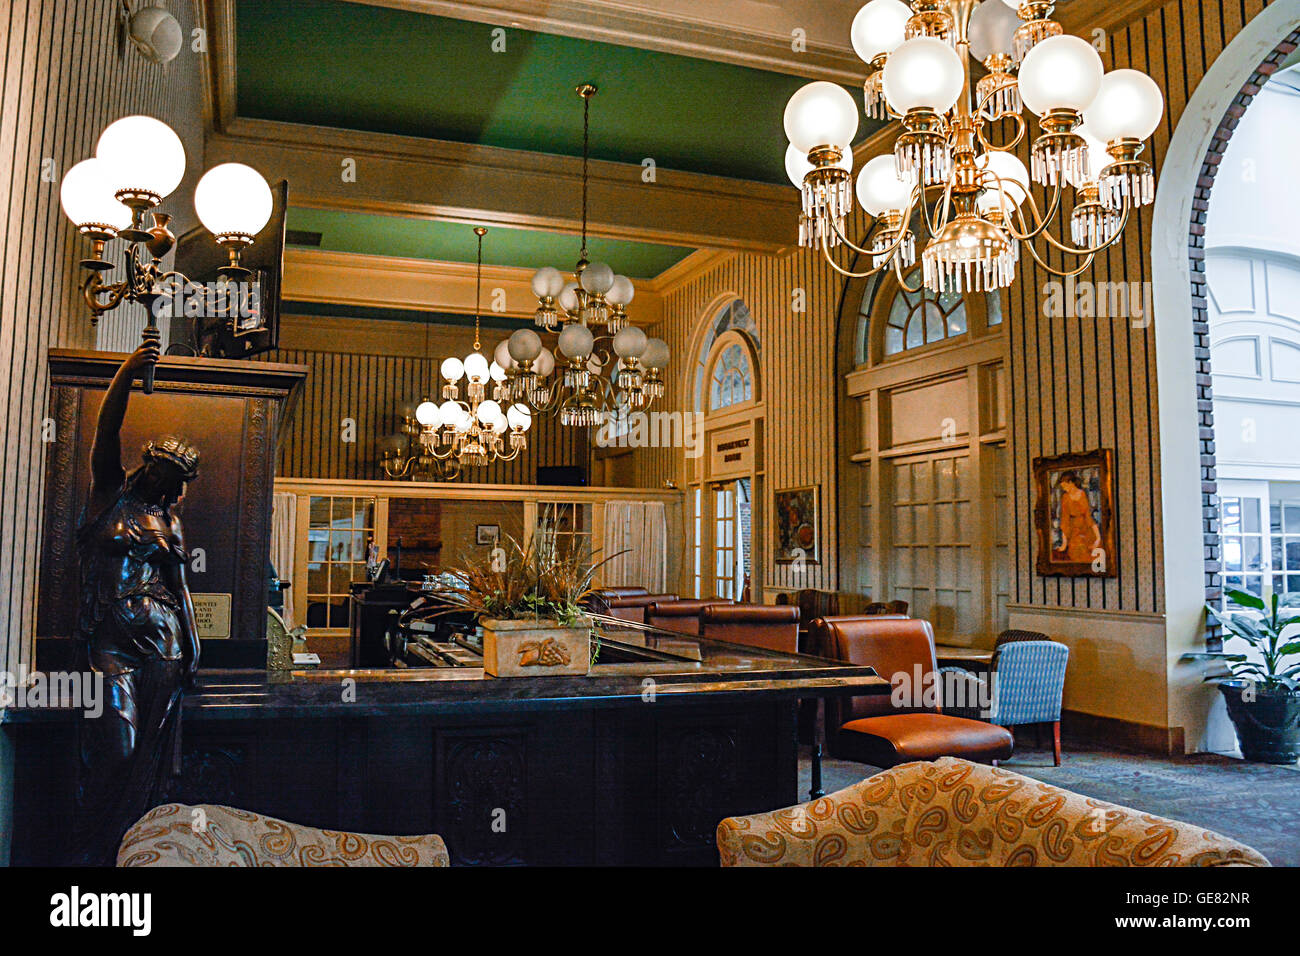 Beautiful interior of the bar in the historic Chattanooga Choo Choo Hotel in TN, named after the famous Glenn Miller - Stock Image